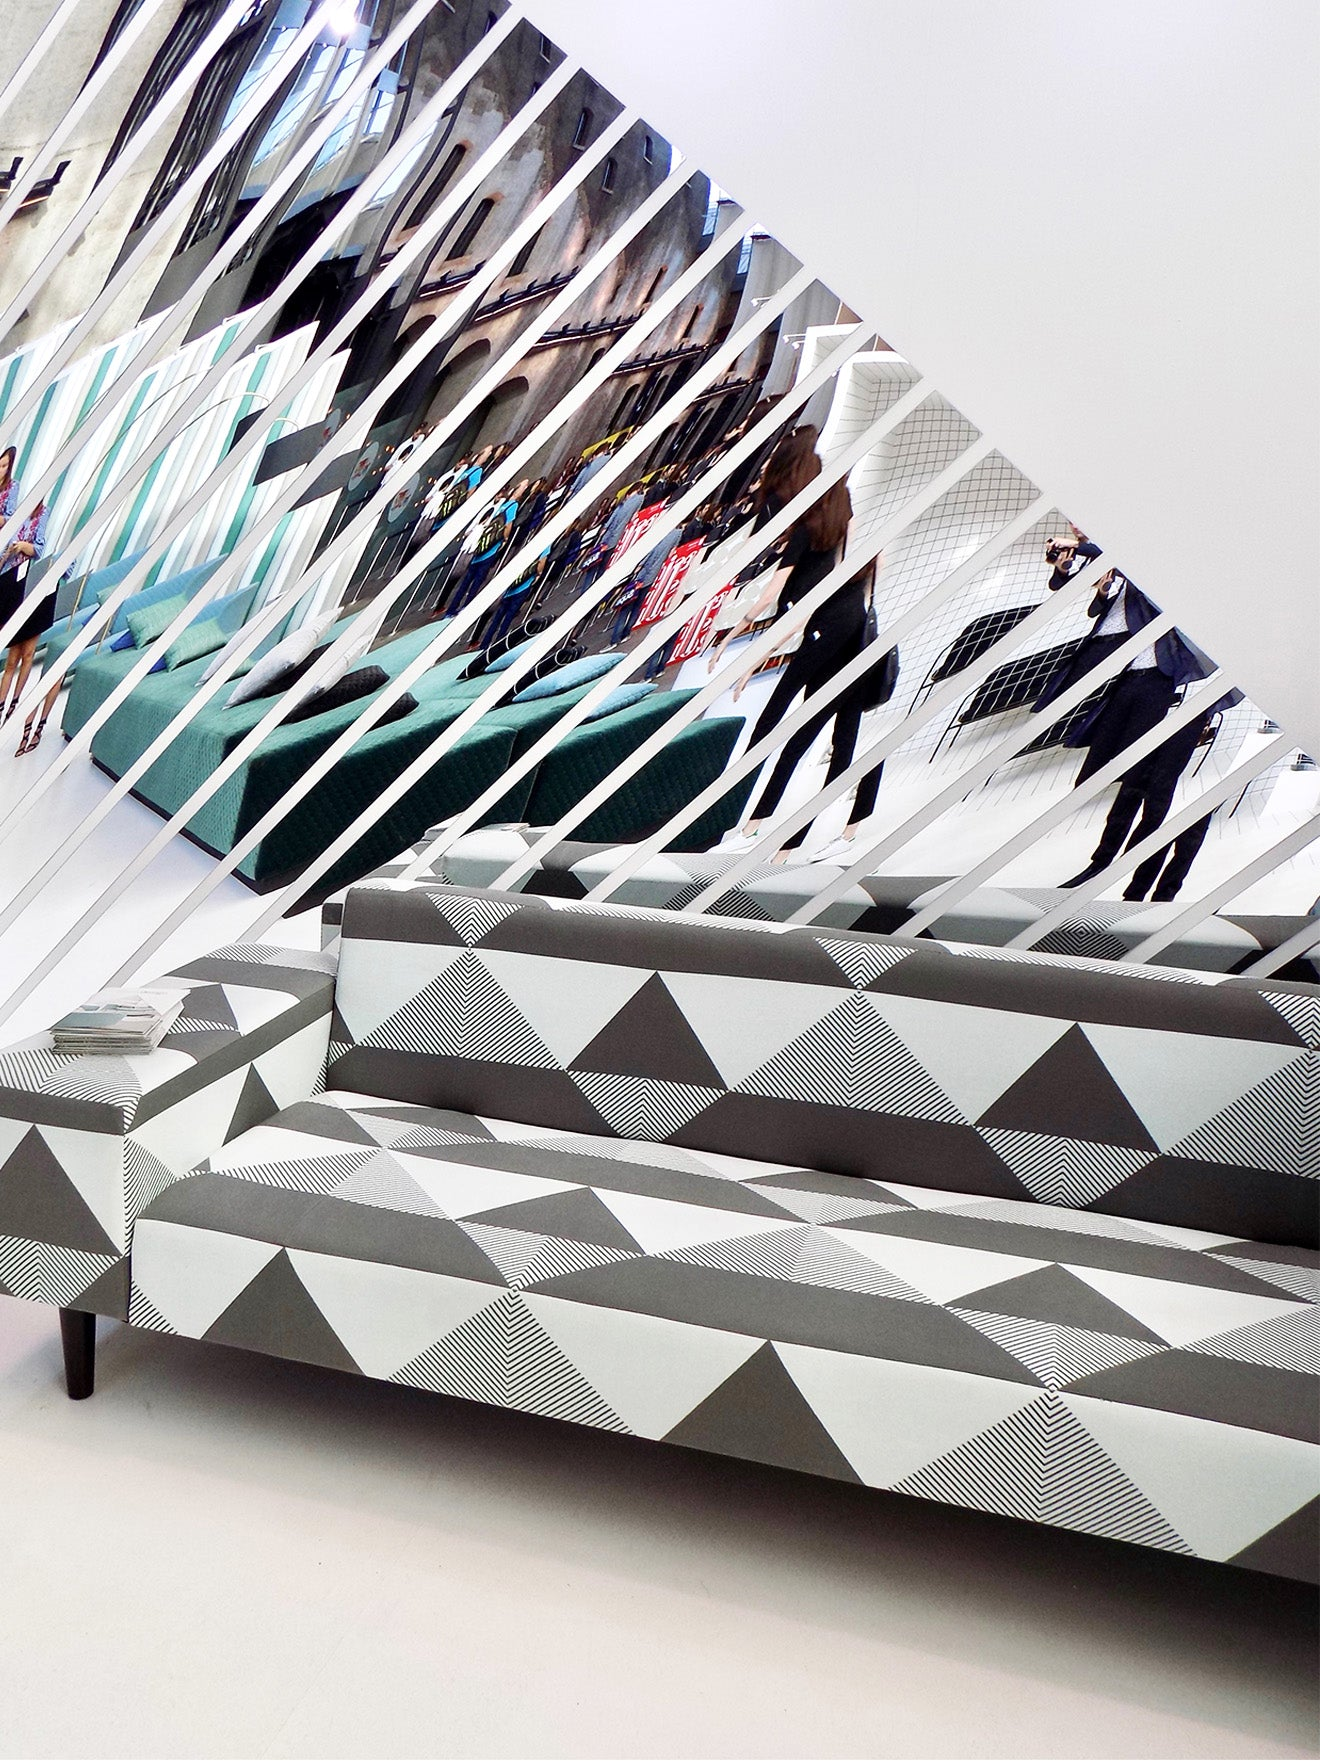 KirkByDesign Geo sofa on display at designjunction London Design Festival